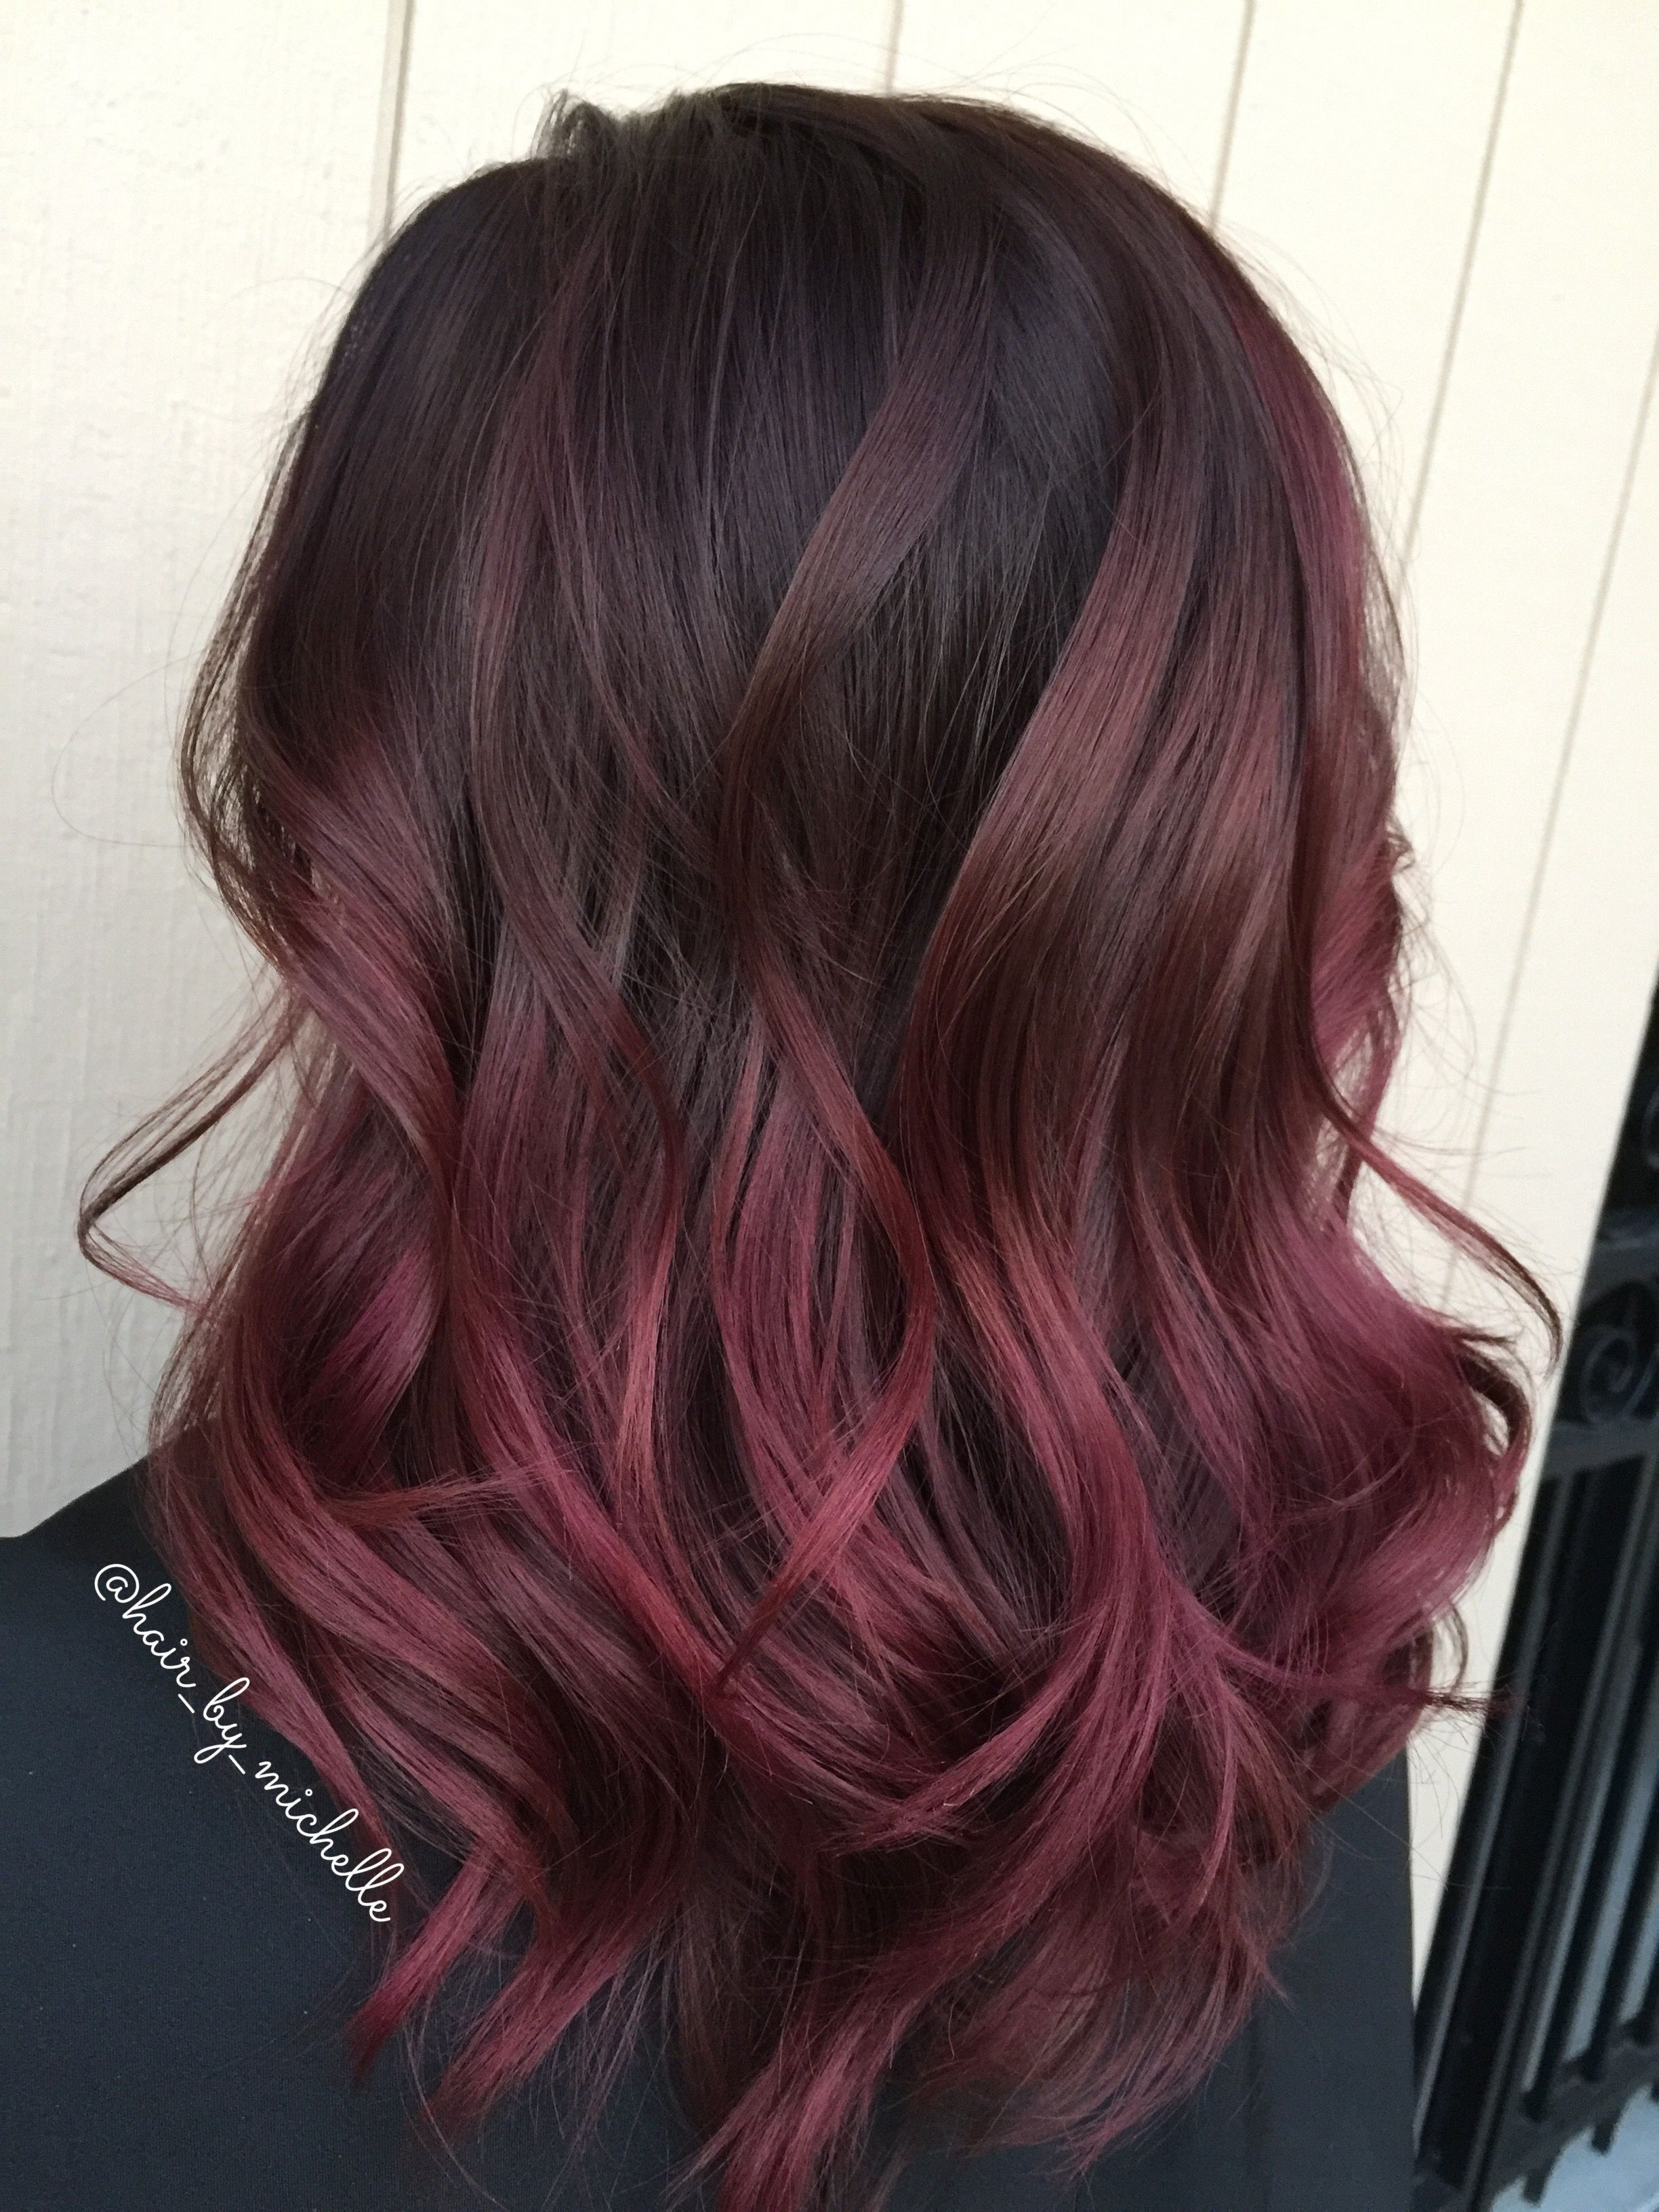 Dark Hair Red Hair Painted Hair Red Ombre Hair Brunette Hair Color Red Balayage Hair